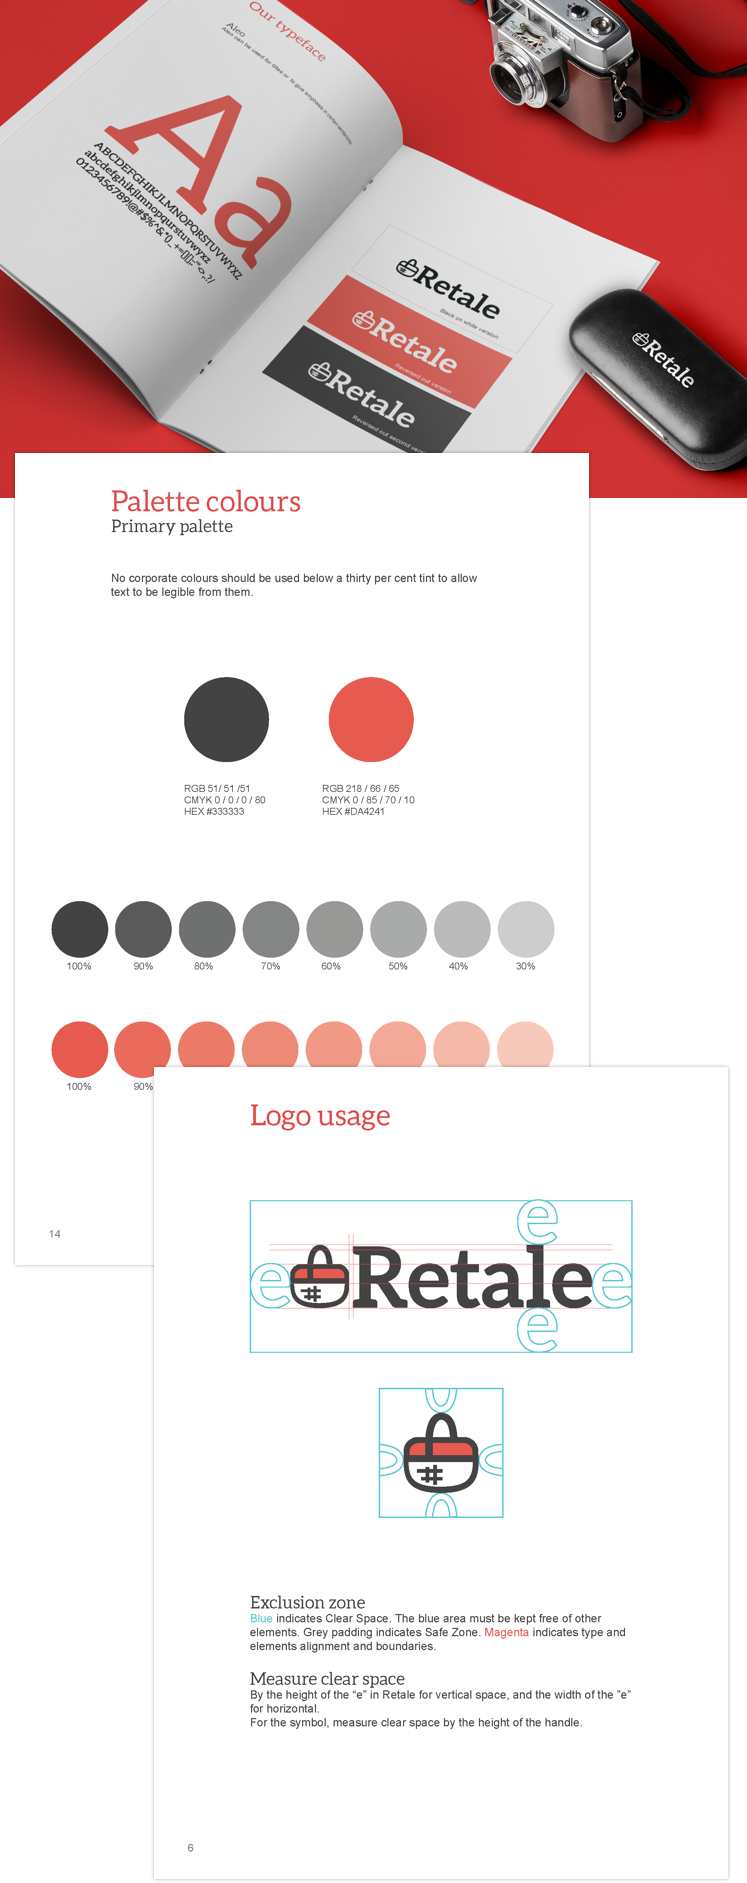 Brand guideline for Retale